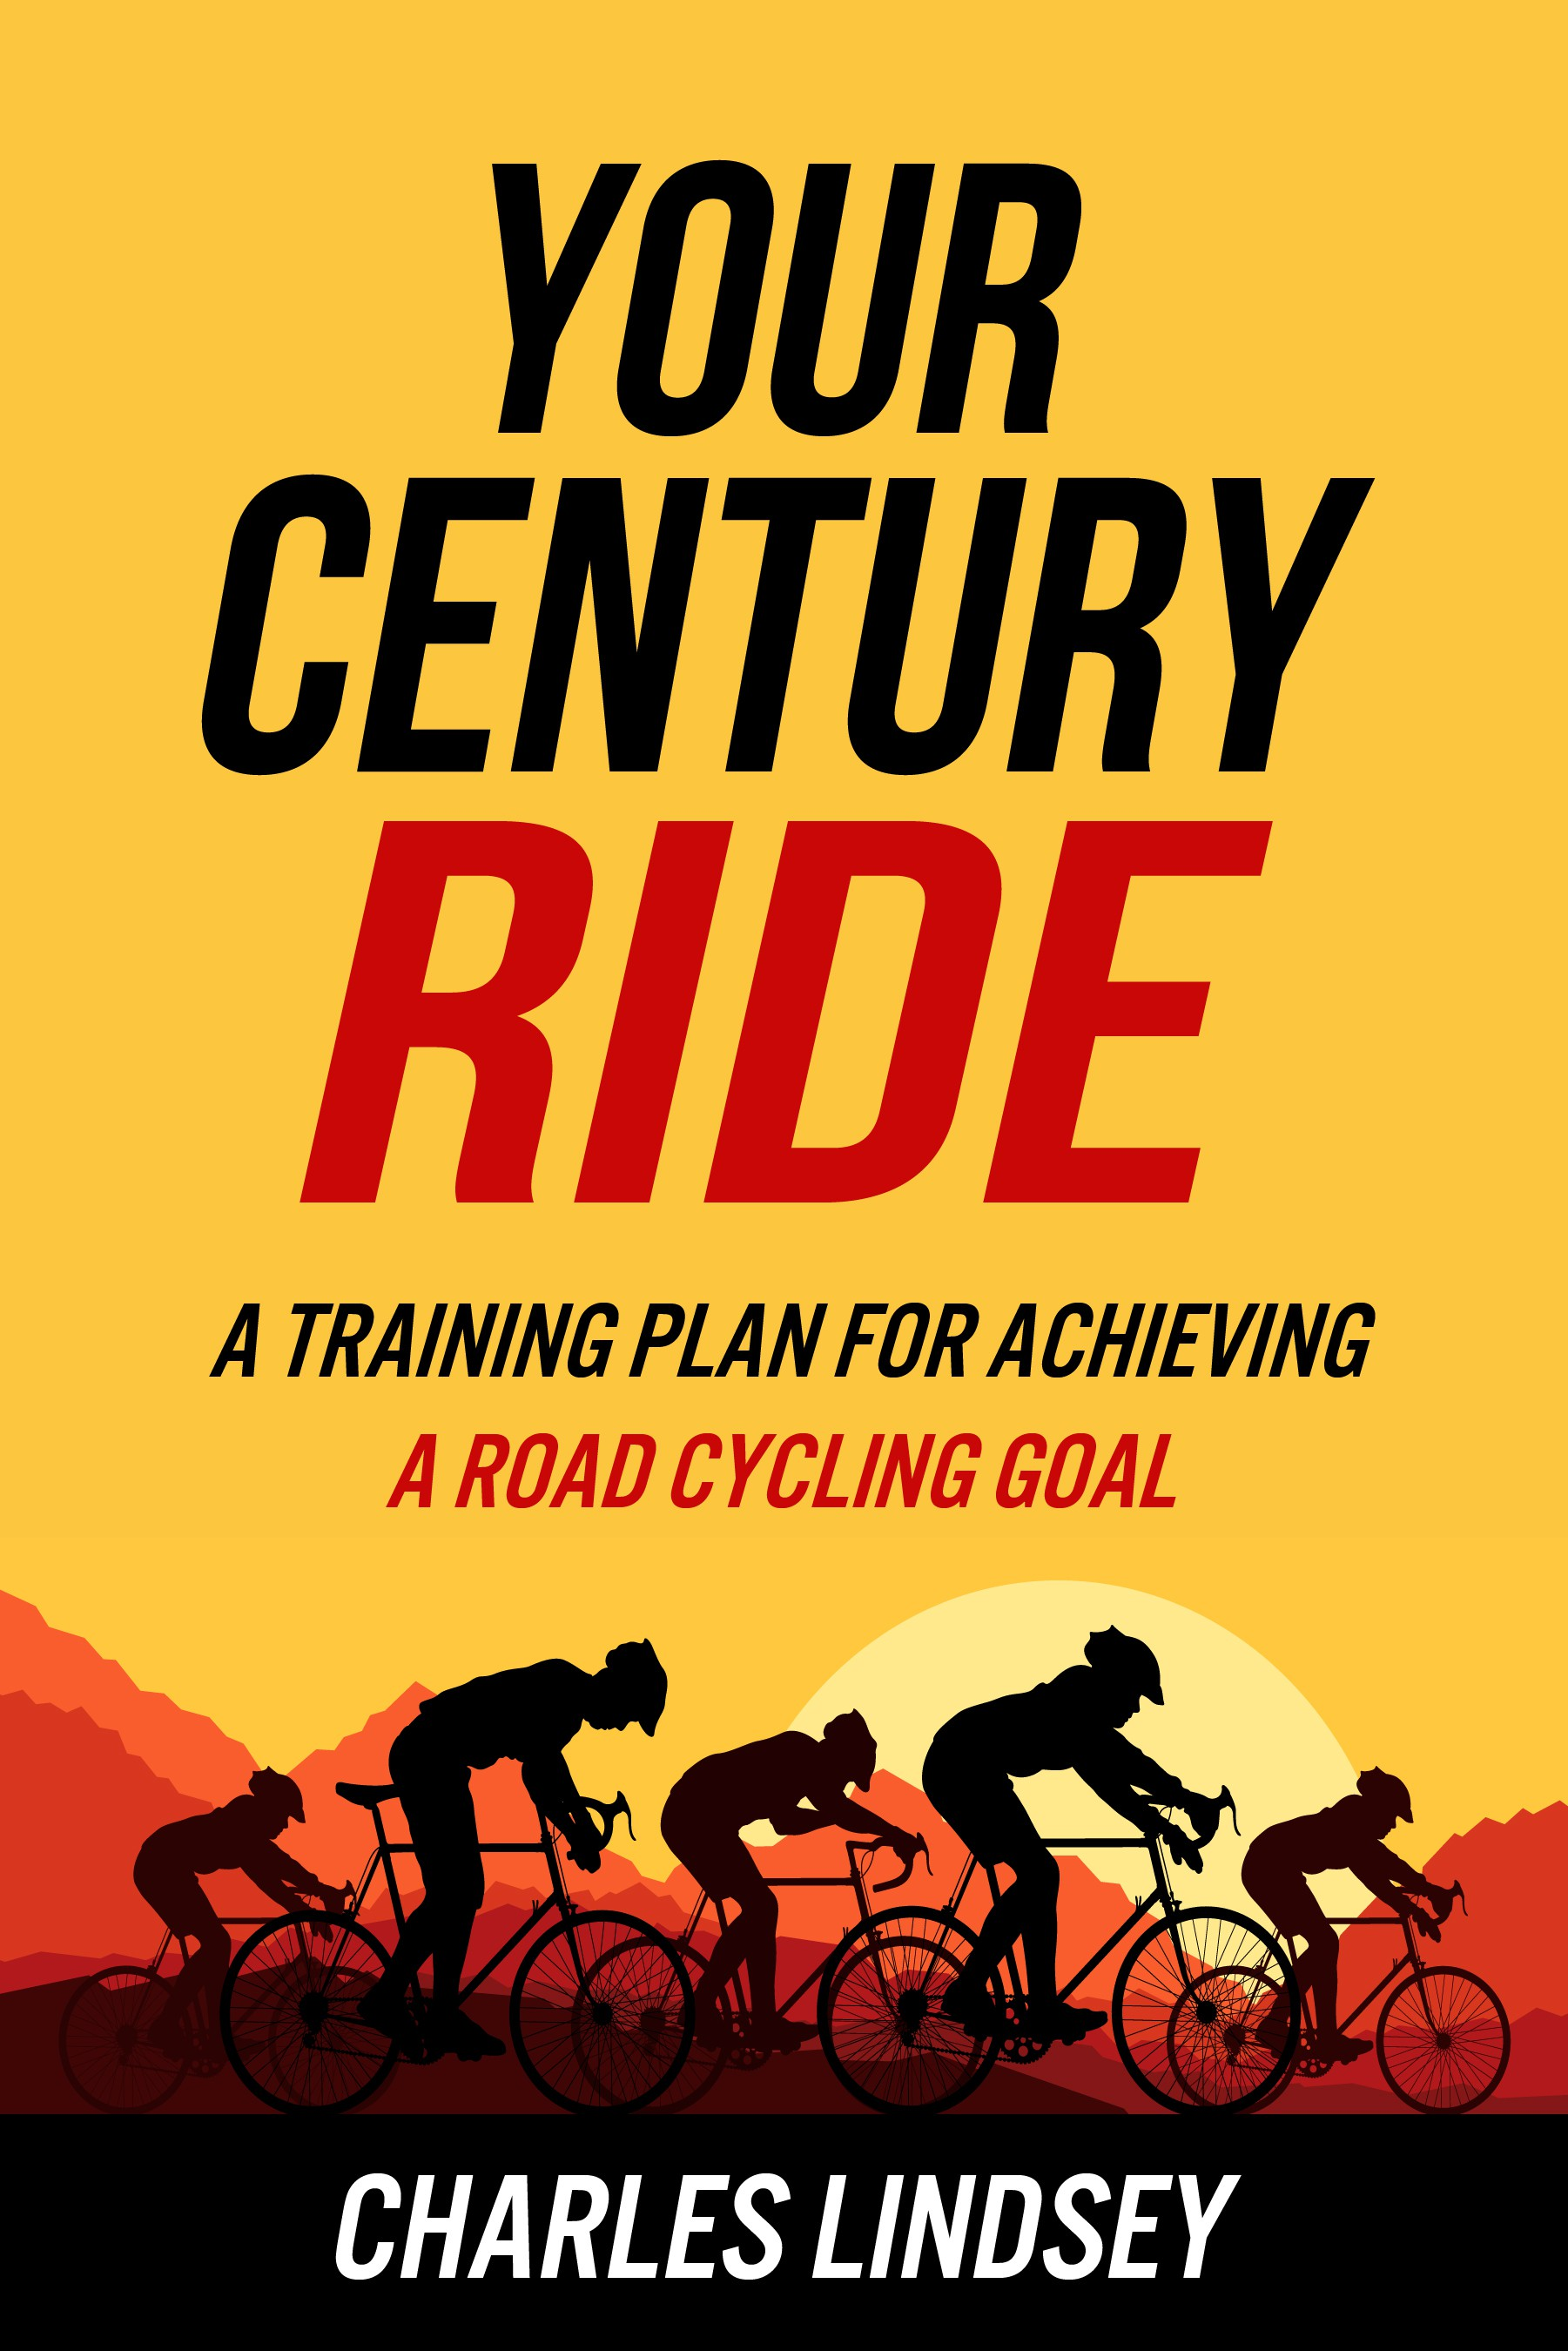 Fun, creative book cover about century ride training for road cyclists.